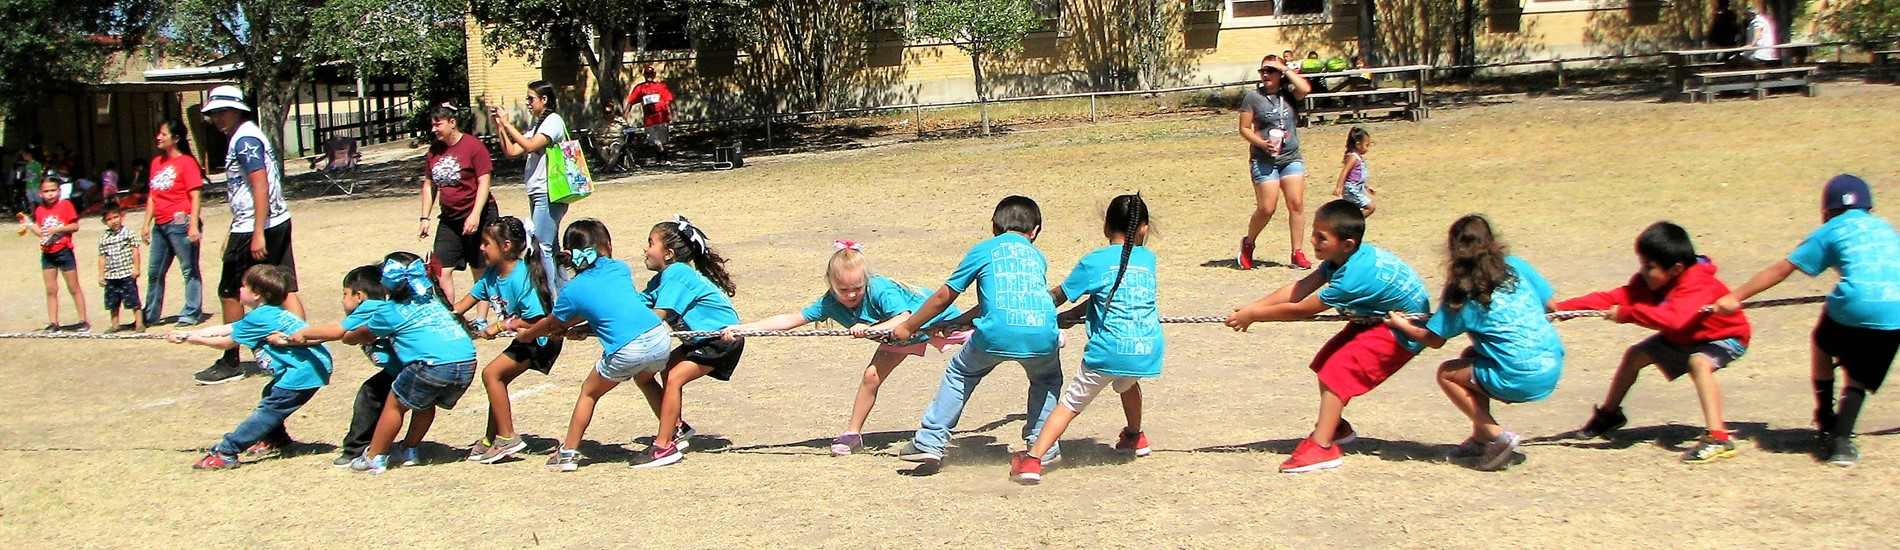 Mathis Elementary Tug of War